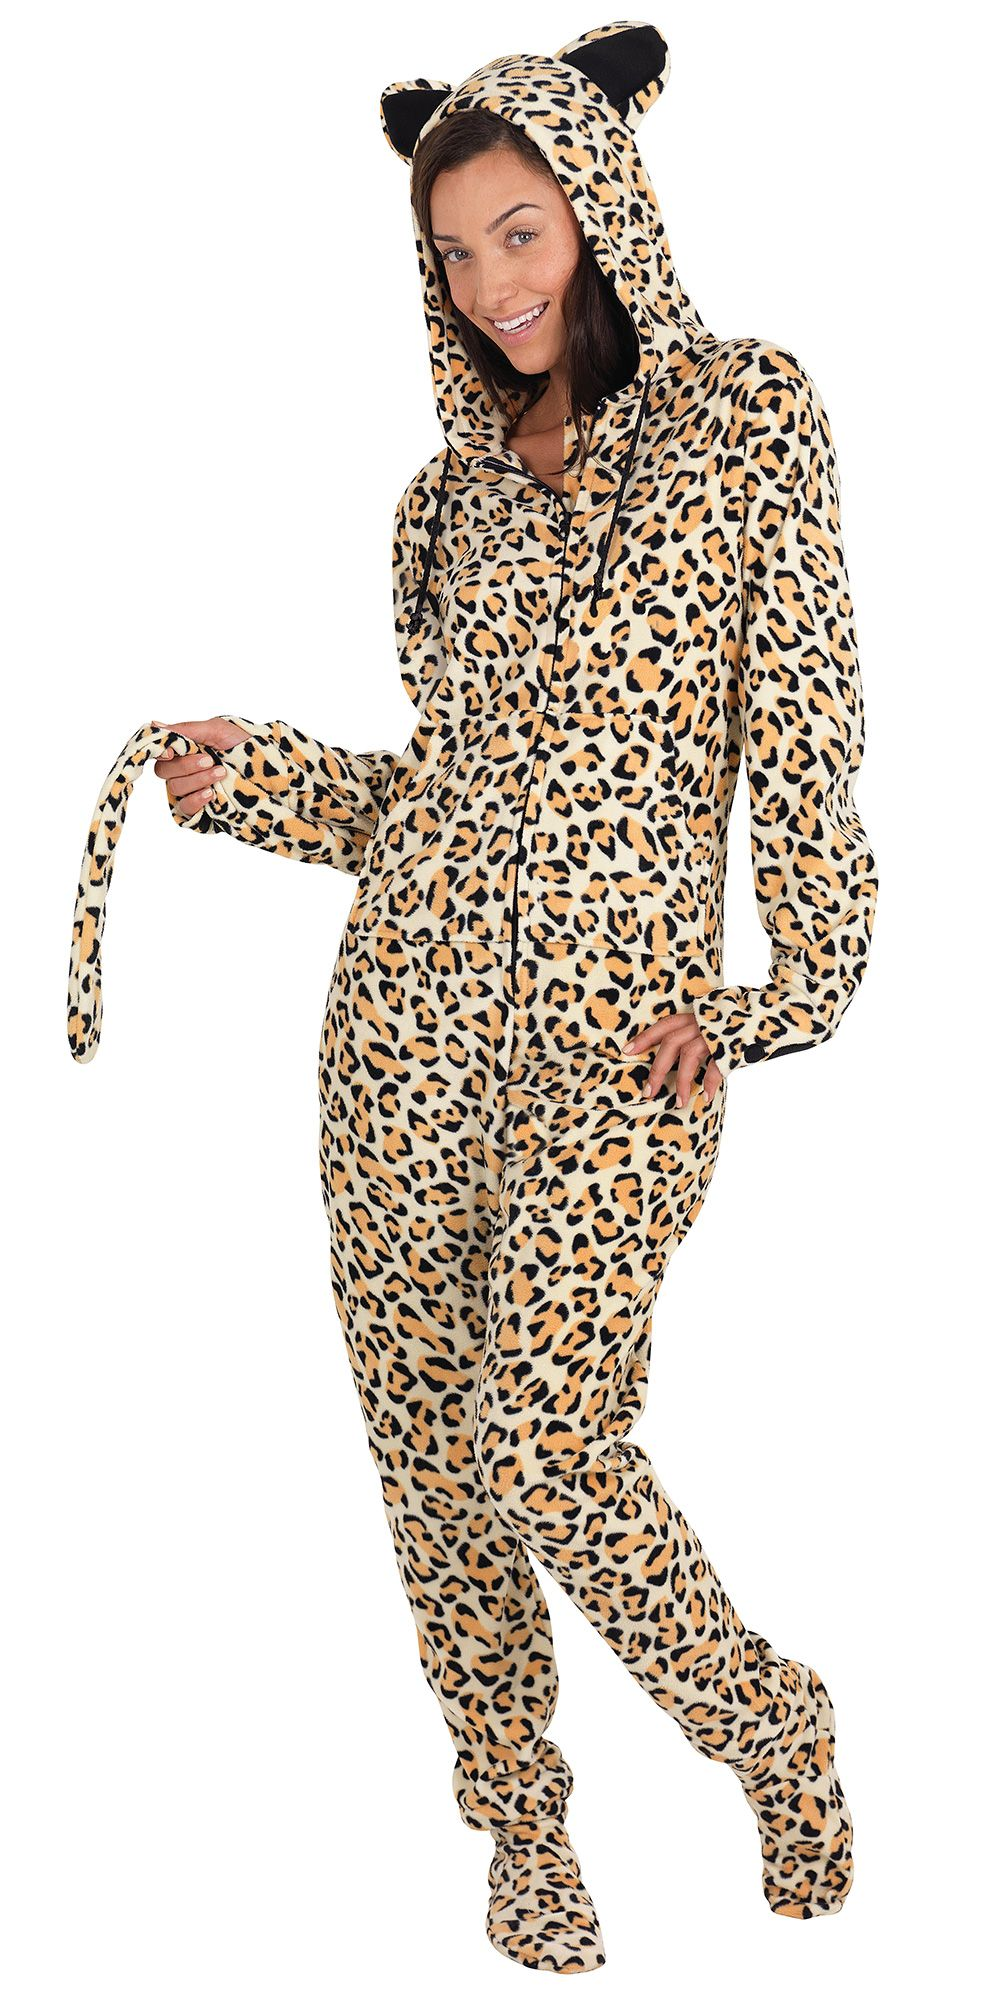 Hoodie-footie - Leopard Hideous Clothes And Accessories